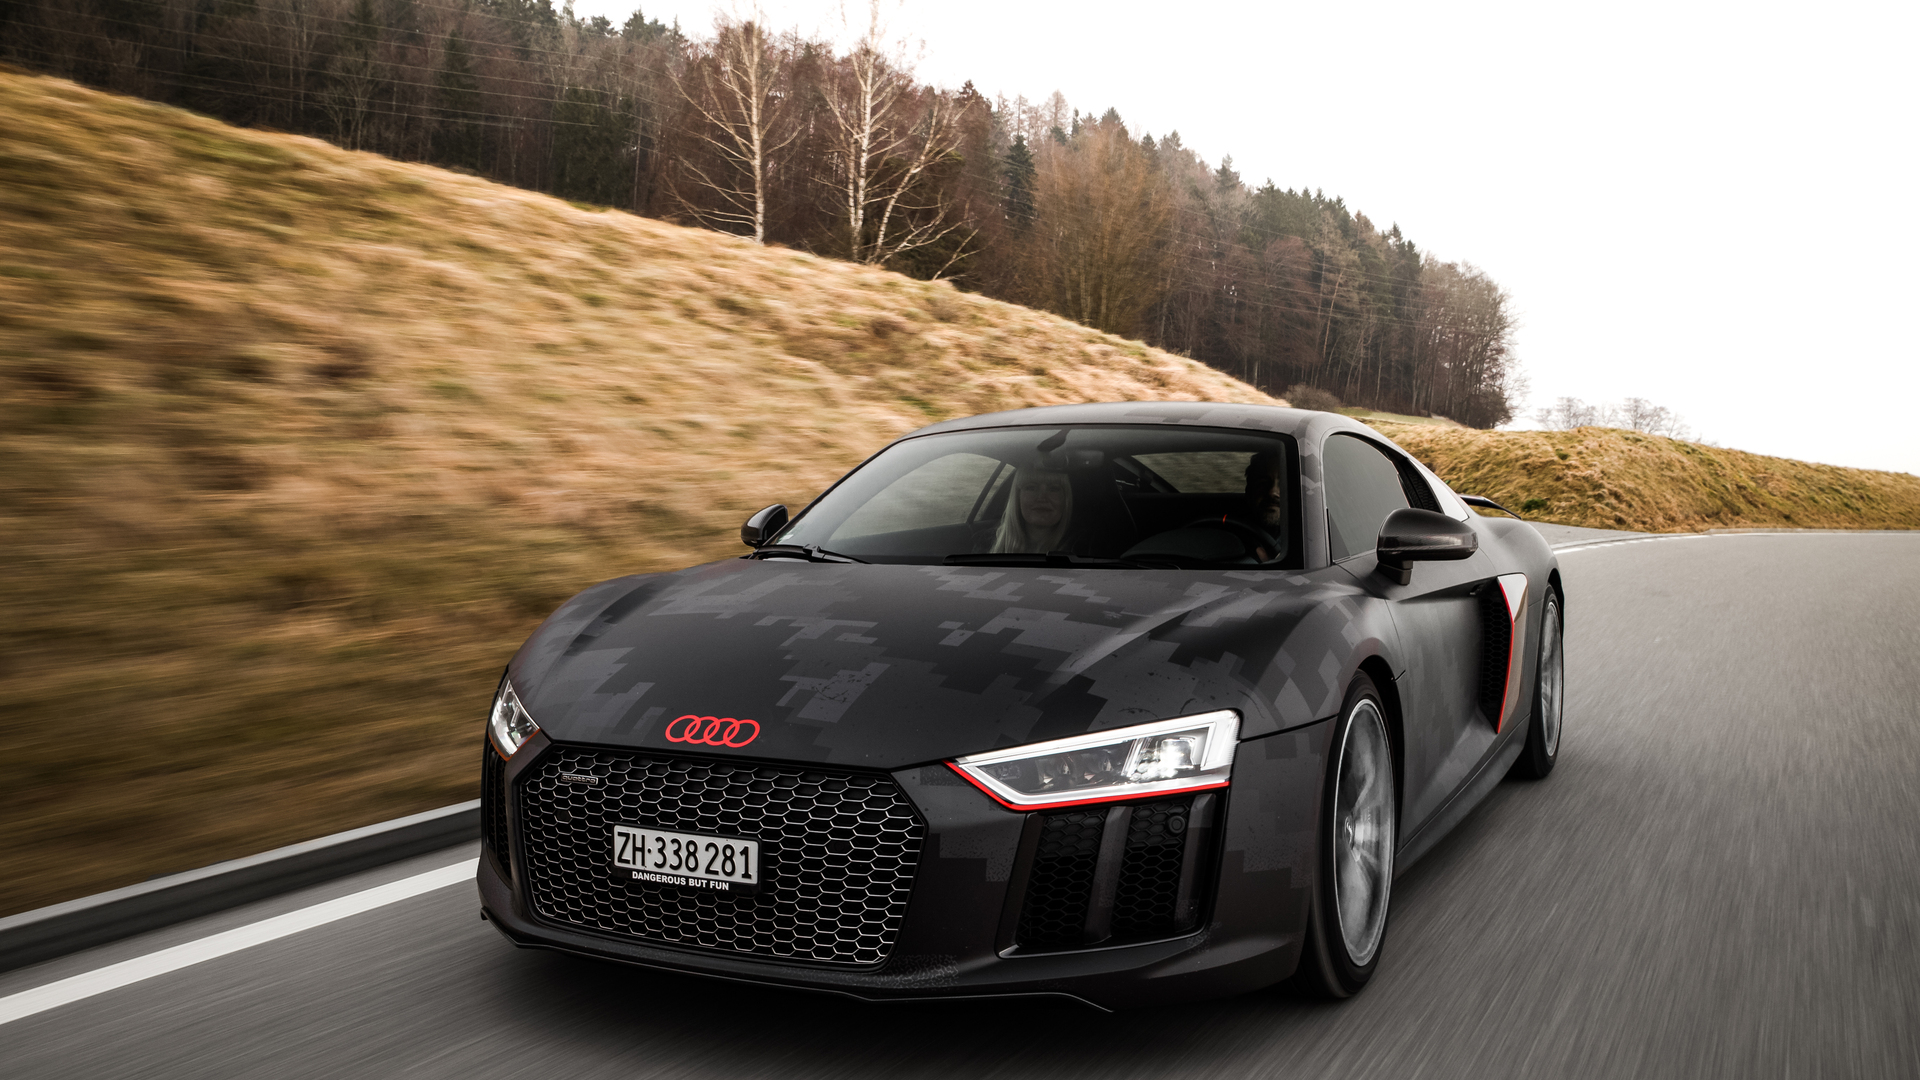 1920x1080 Black Audi R8 V10 Plus Laptop Full Hd 1080p Hd